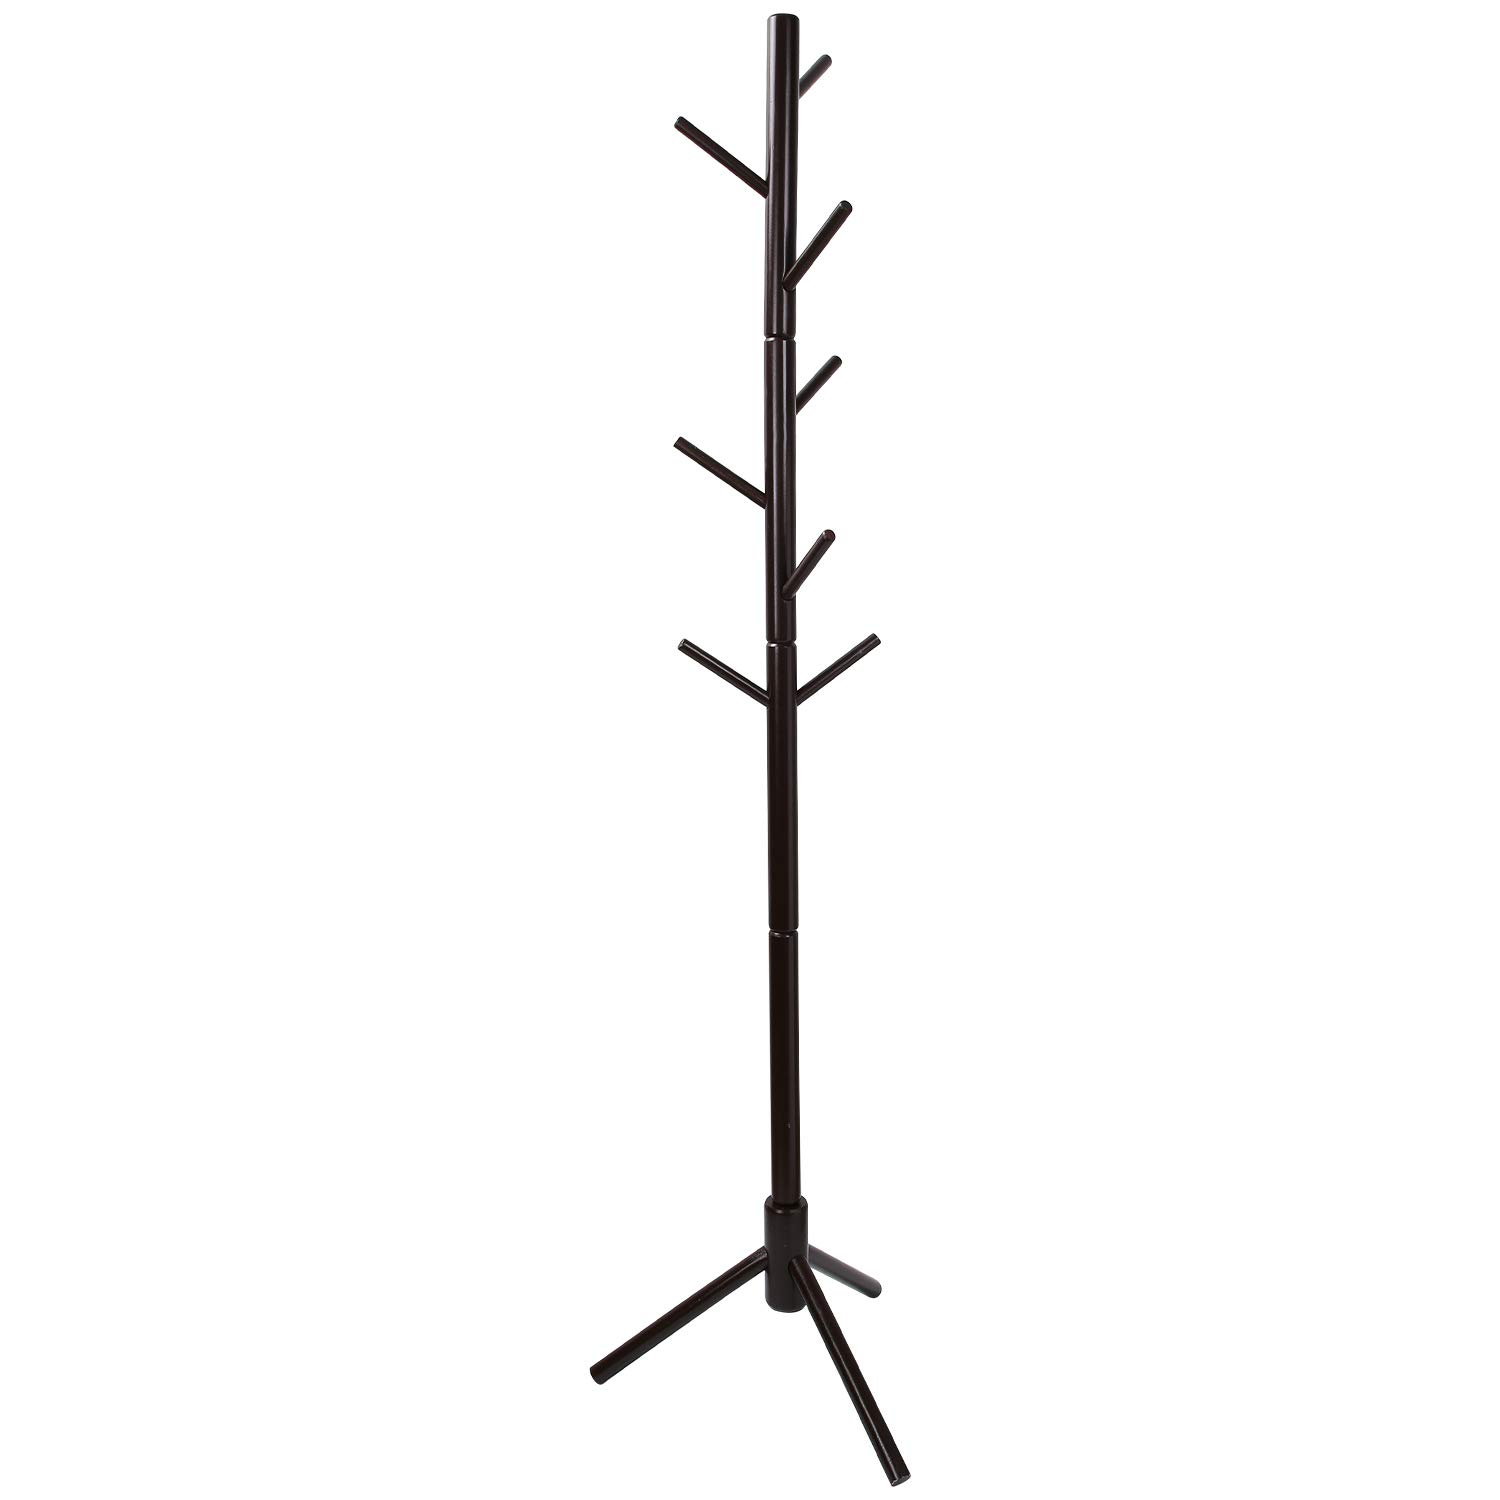 Clewiltess Wooden Tree Coat Rack Stand, 8 Hooks Super Easy Assembly, Hallway Entryway Coat Hanger Stand for Clothes, Suits, Accessories Brown